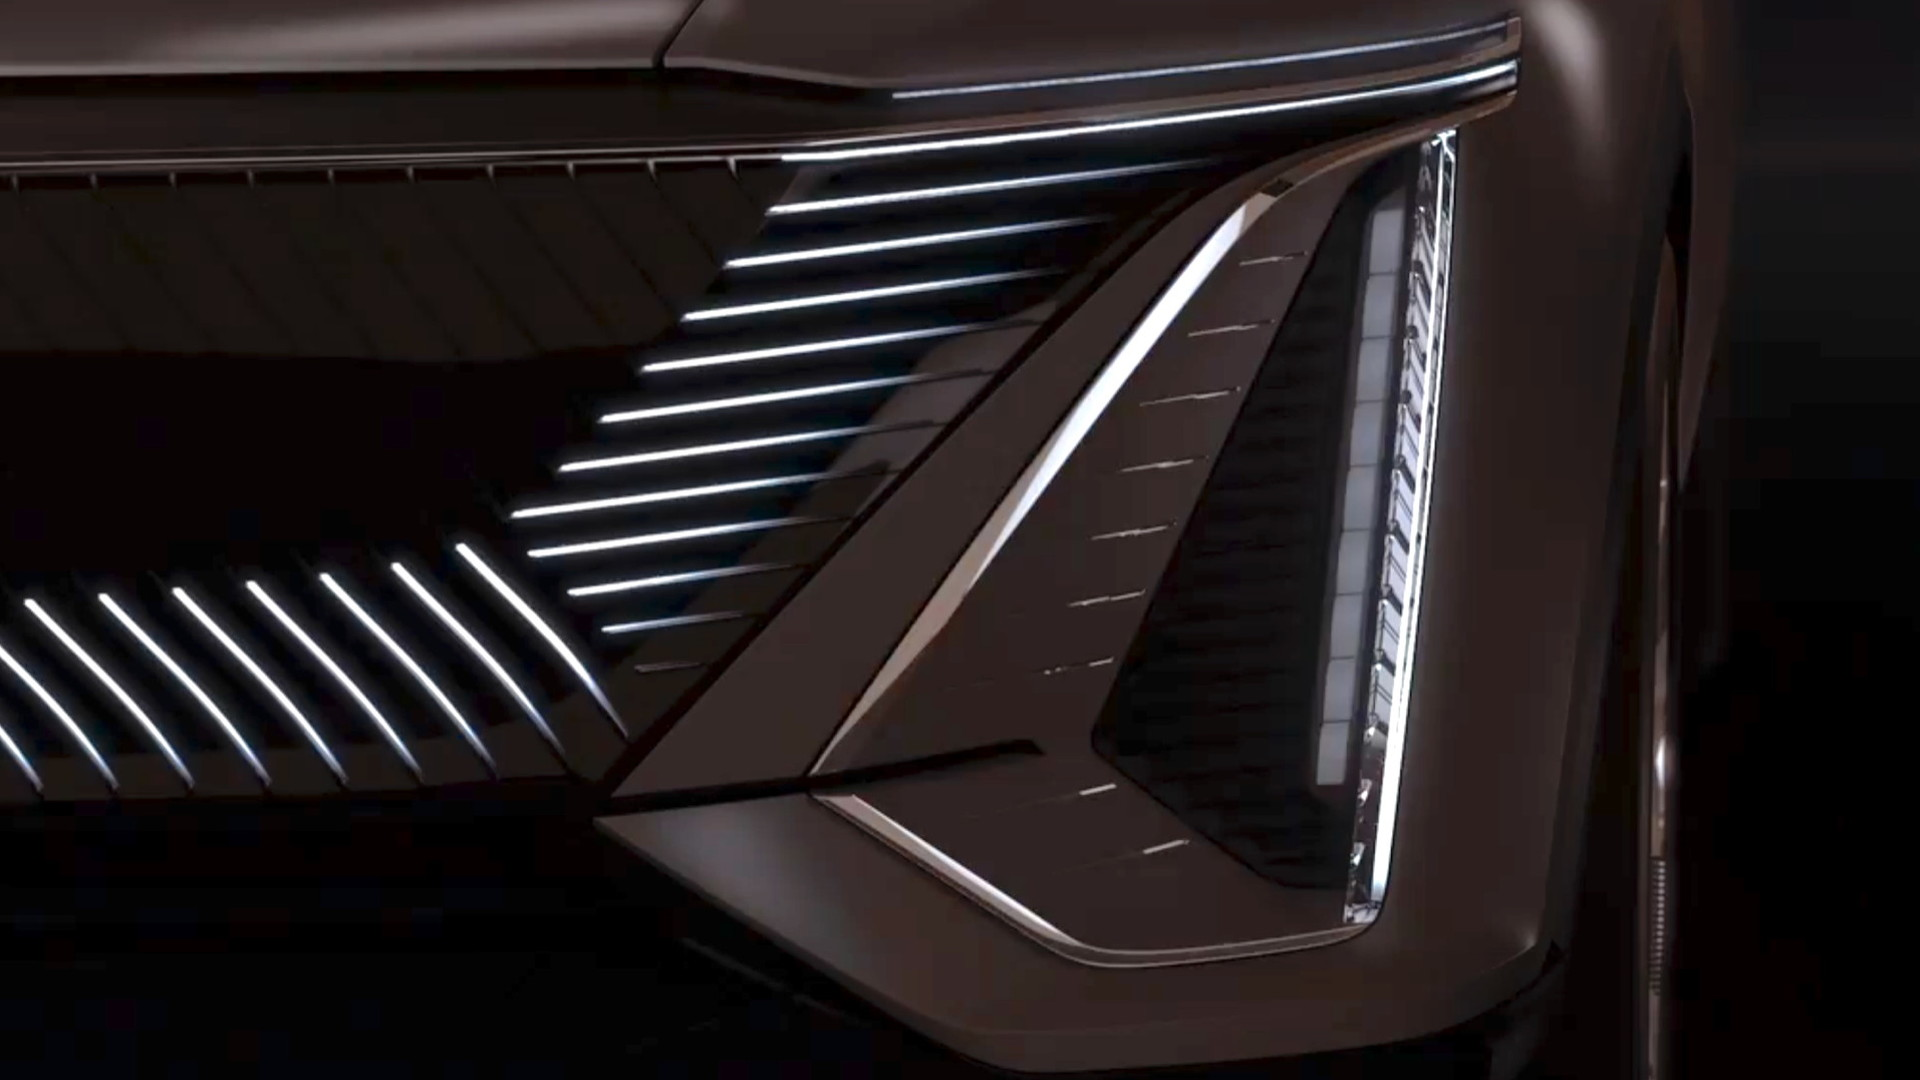 Cadillac Lyriq front corner  -  from teaser video, June 2020